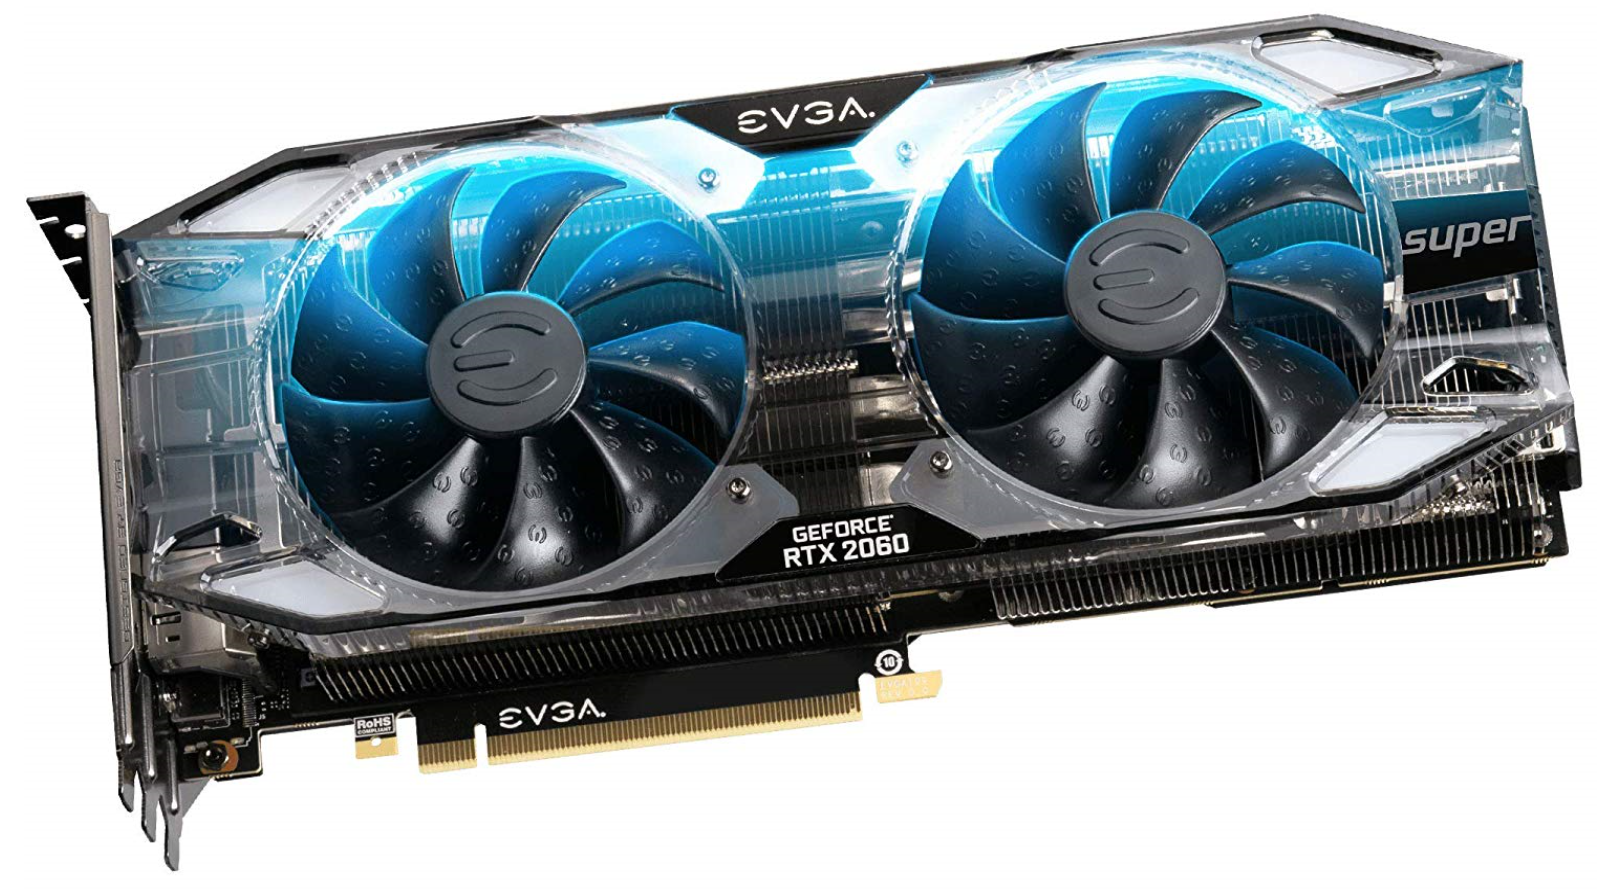 EVGA GeForce RTX Super Listed For Pre-Order on Amazon